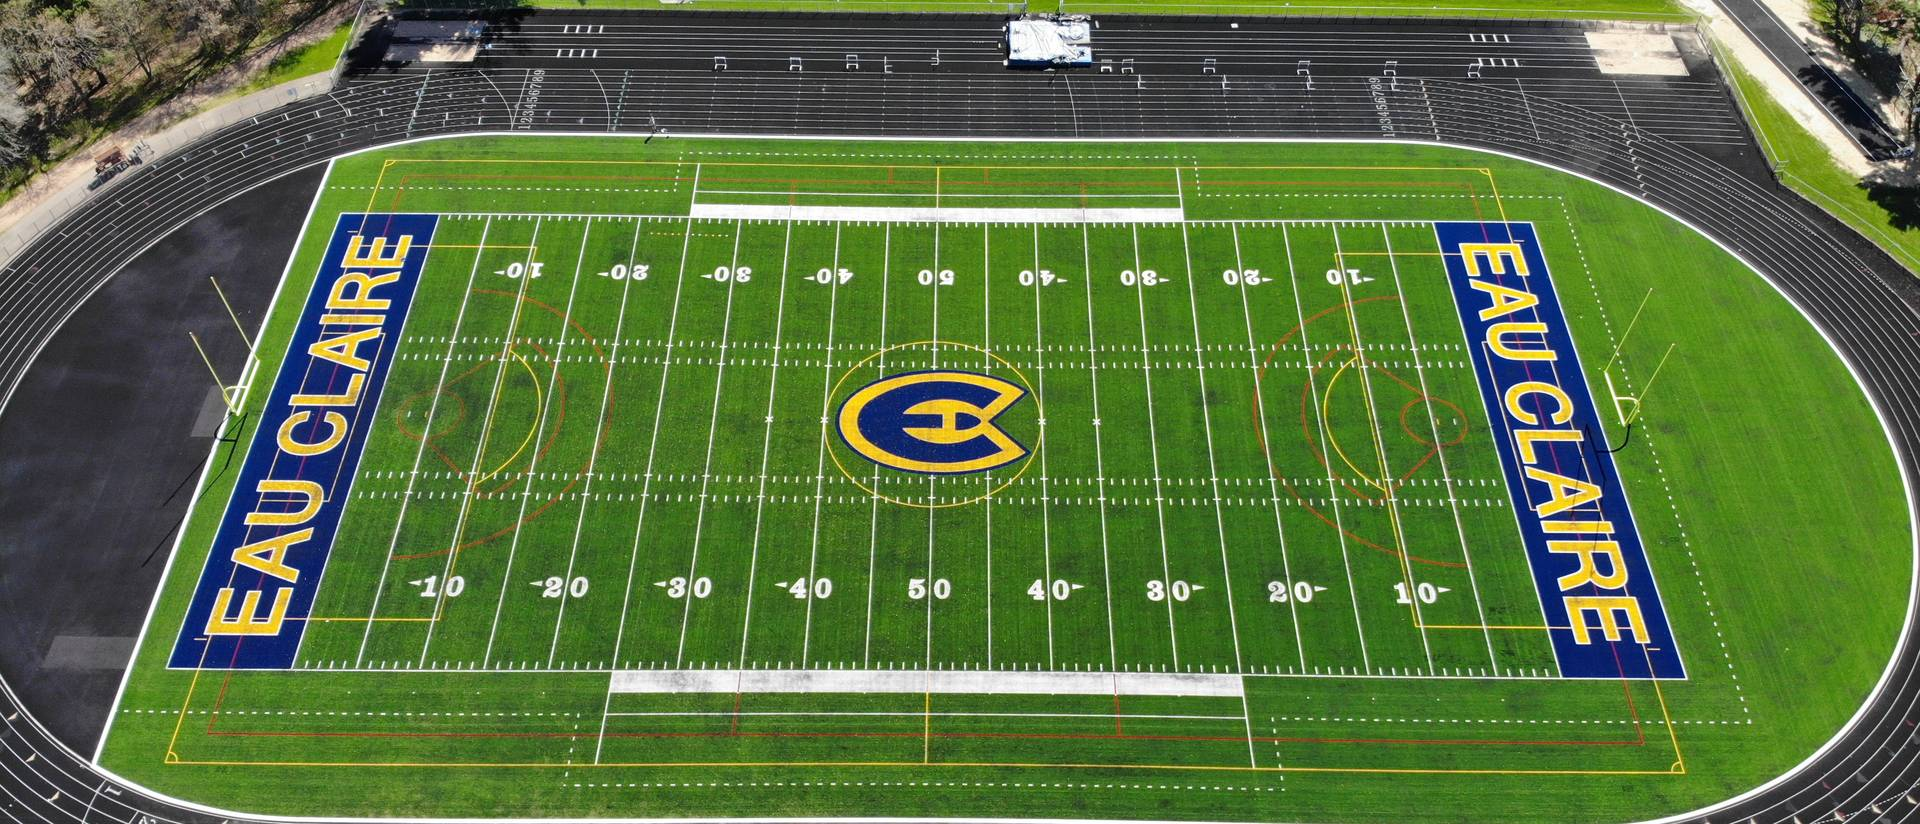 Aerial picture of Simpson Field